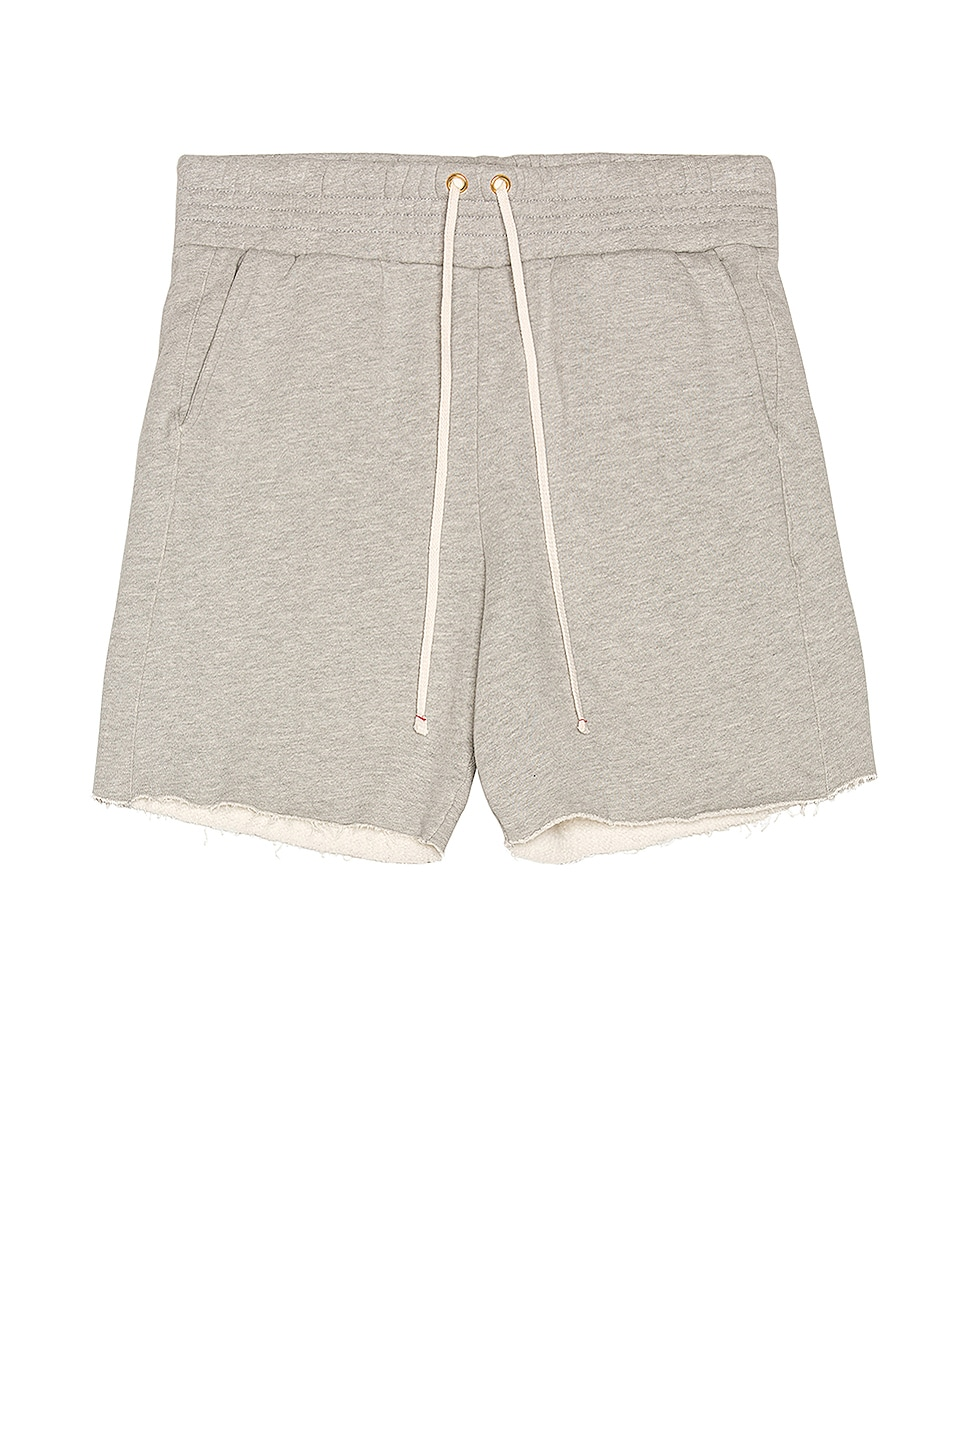 Image 1 of Les Tien Yacht Short in Heather Grey